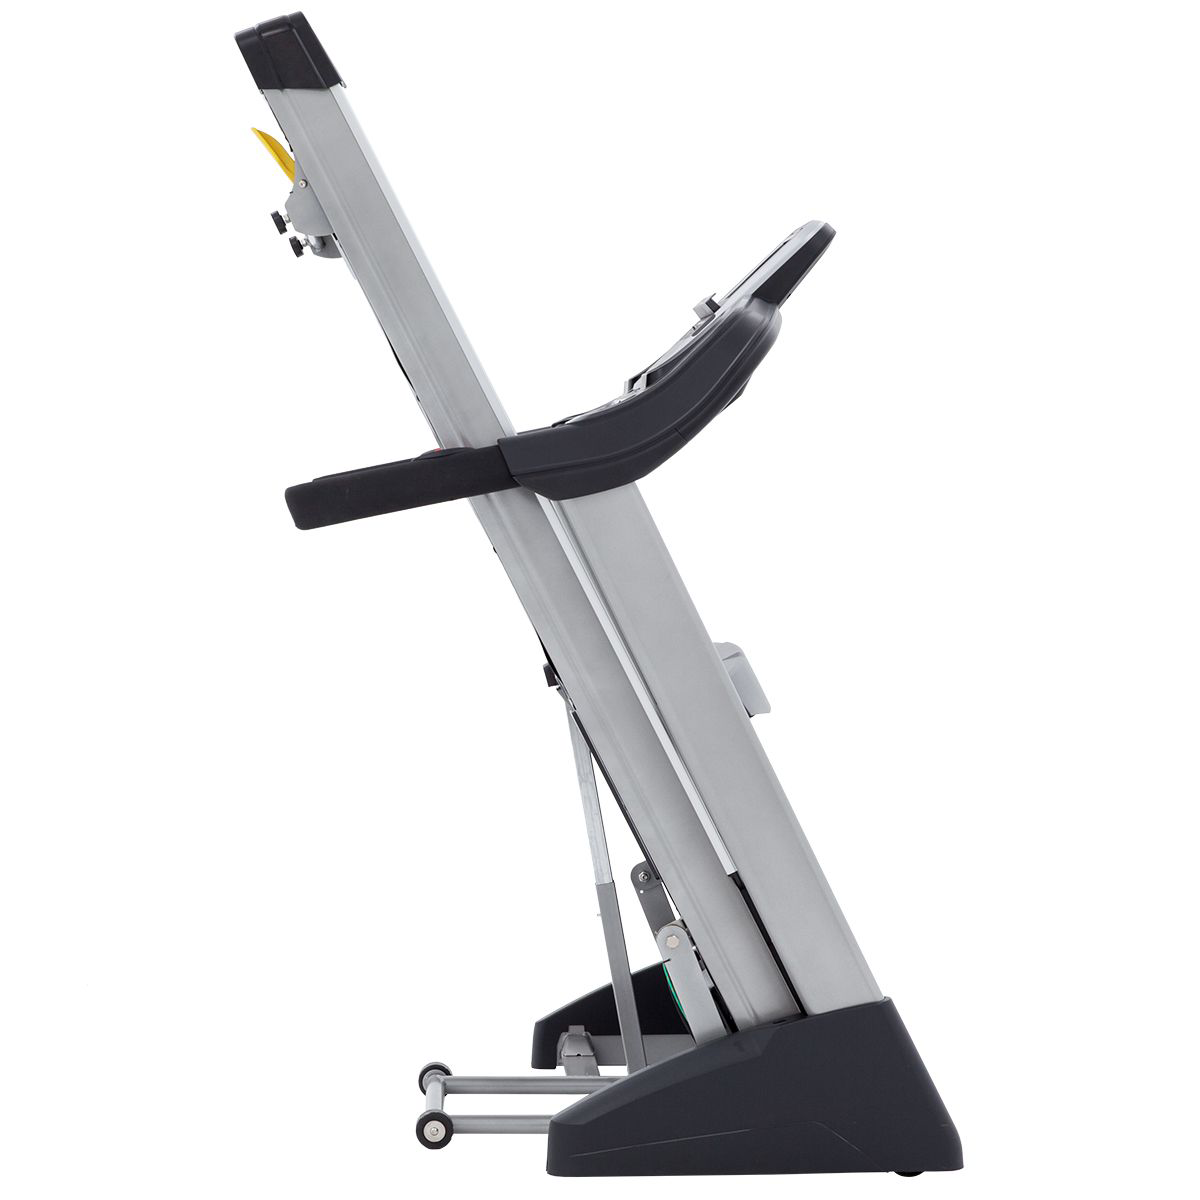 Side view of the Spirit Fitness XT485 treadmill in folded position.